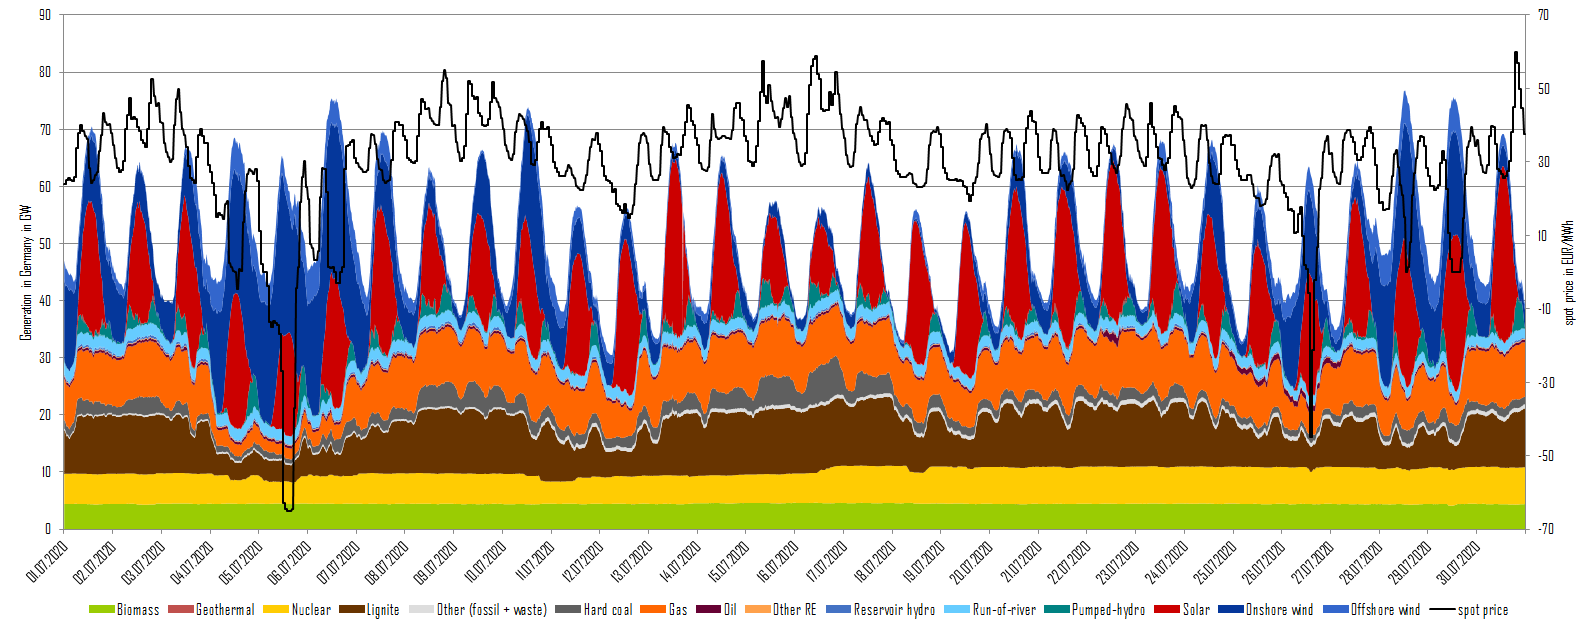 Power generation and day-ahead prices in July 2020 in Germany (source: Energy Brainpool)